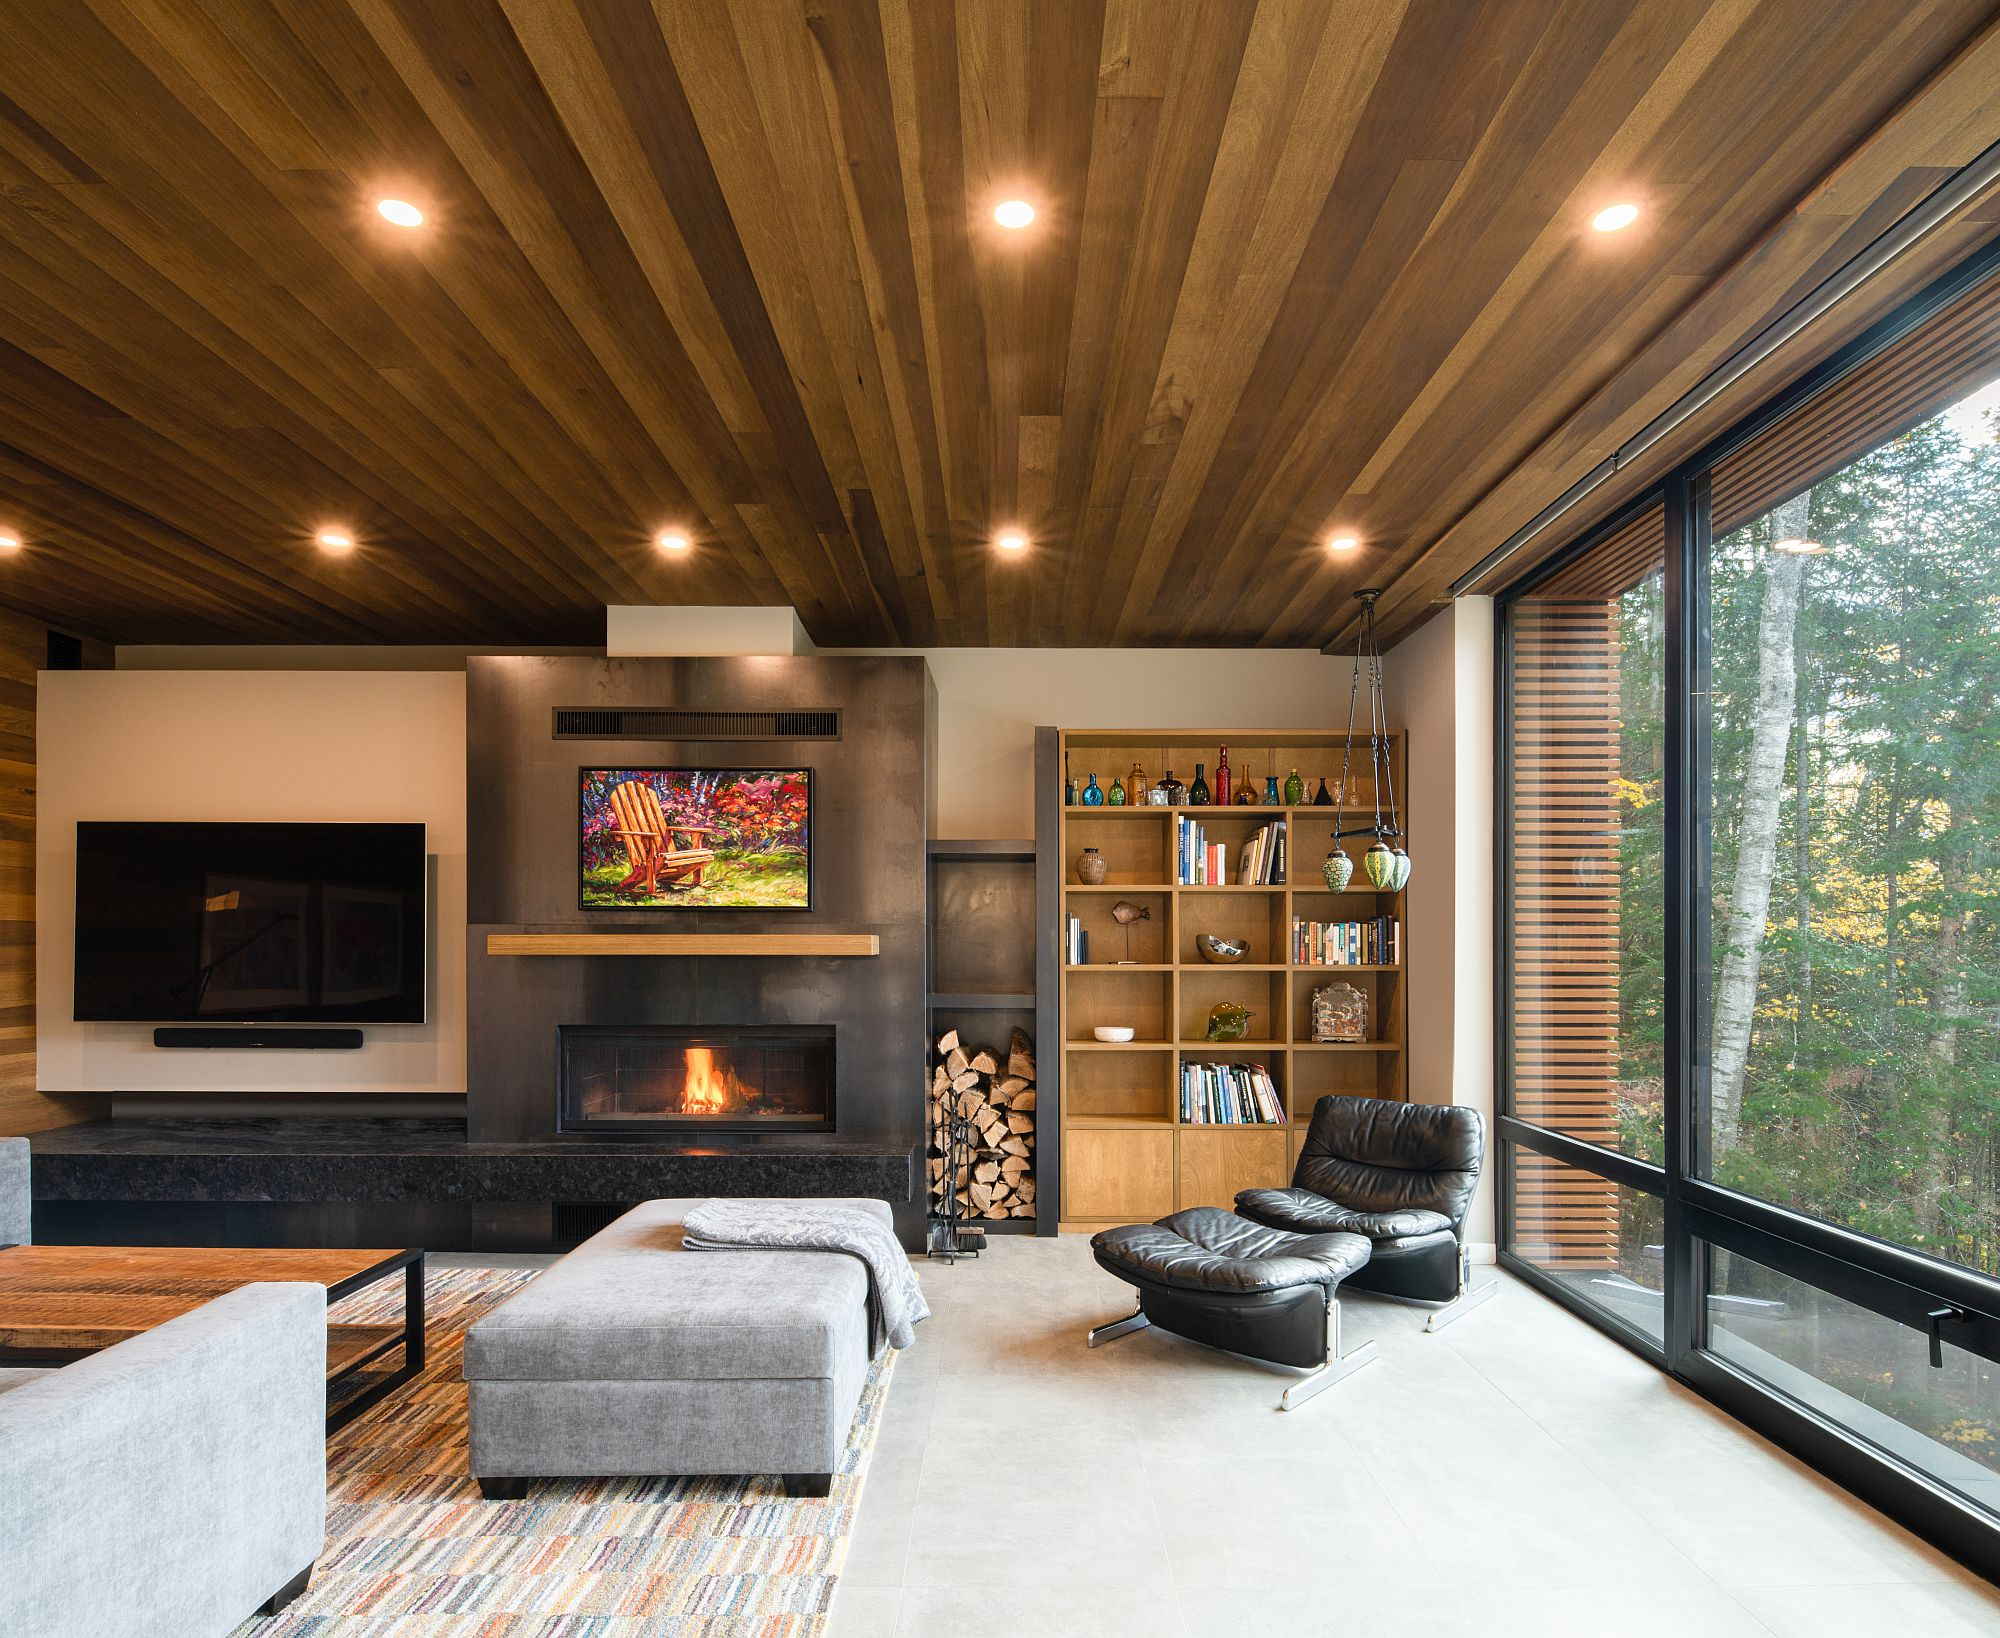 Living area of the house with a smart fireplace, woodsy ceiling and large floor-to-ceiling glass walls that bring the outdoors inside